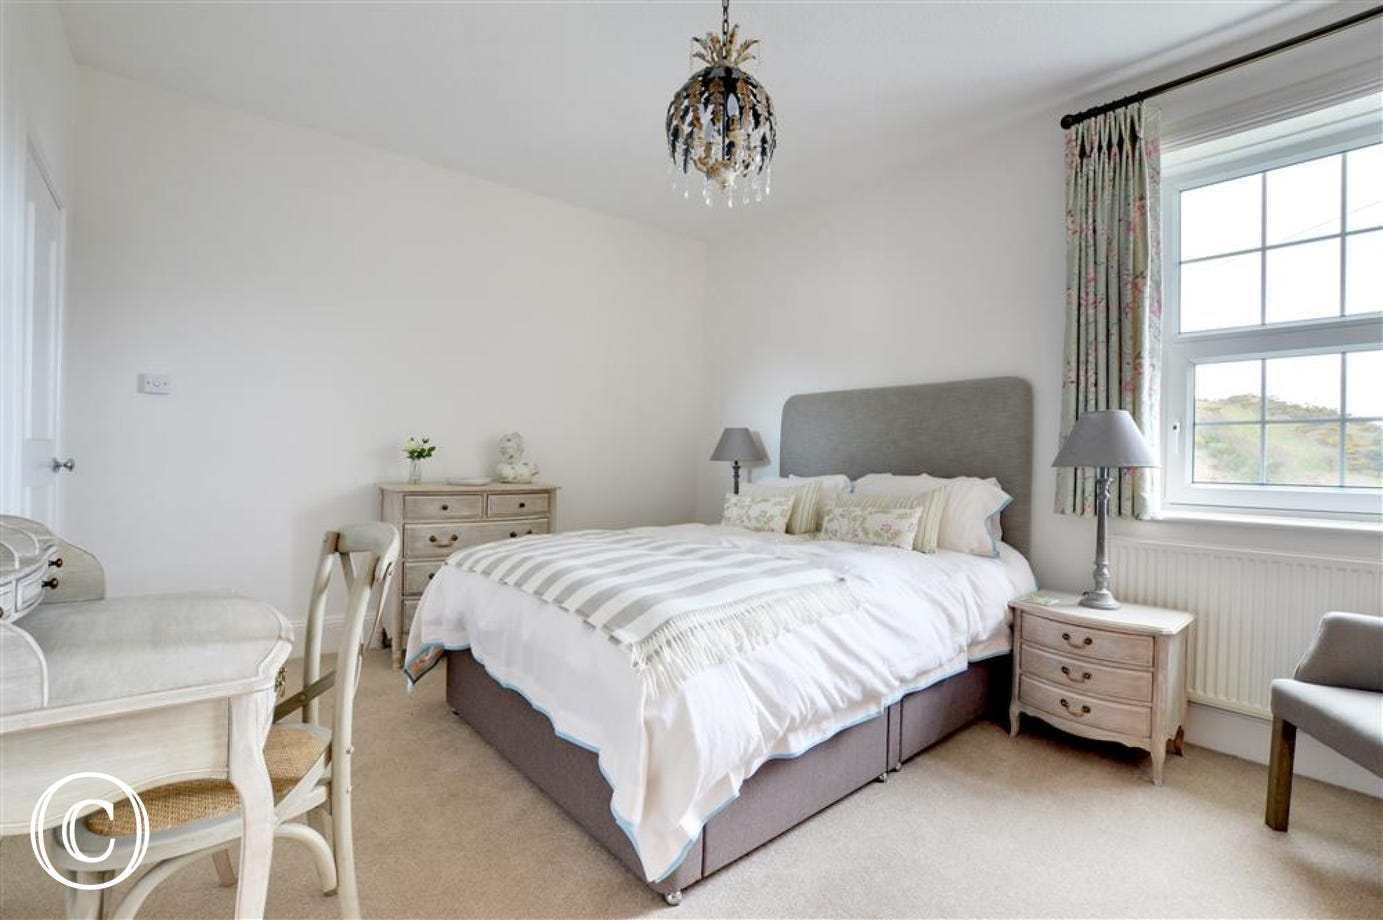 Beautifully decorated master bedroom